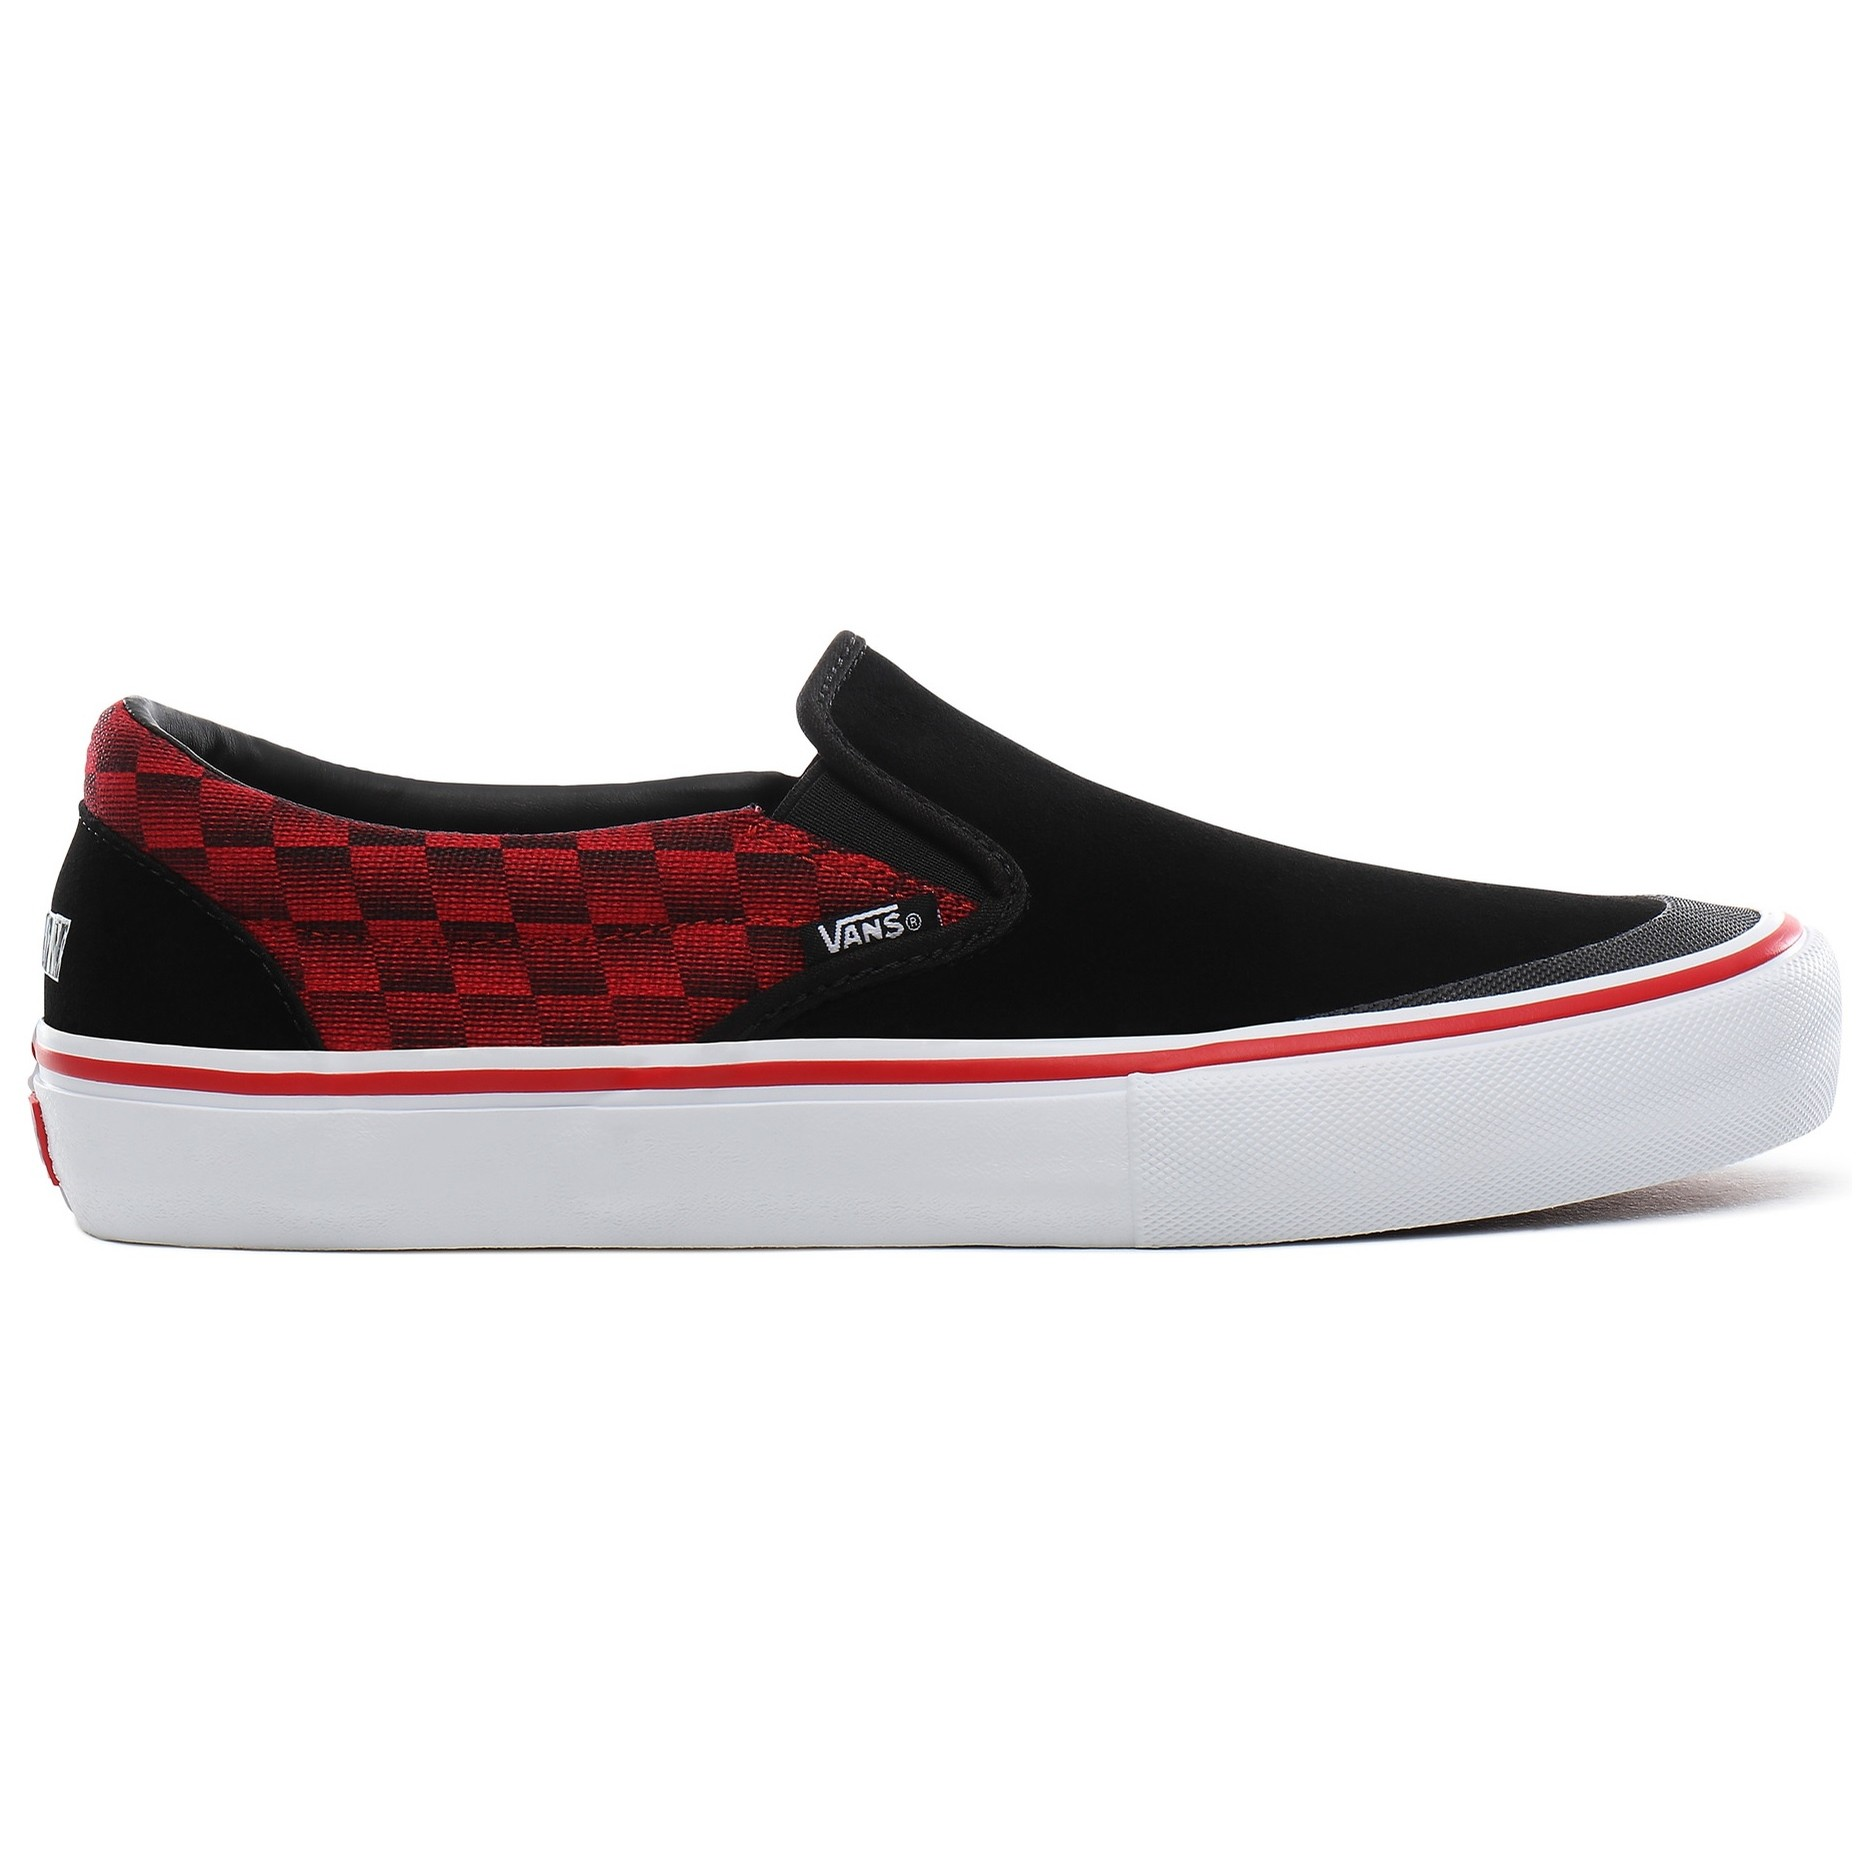 Slip-On Pro (Baker) Rowan/Speed Check